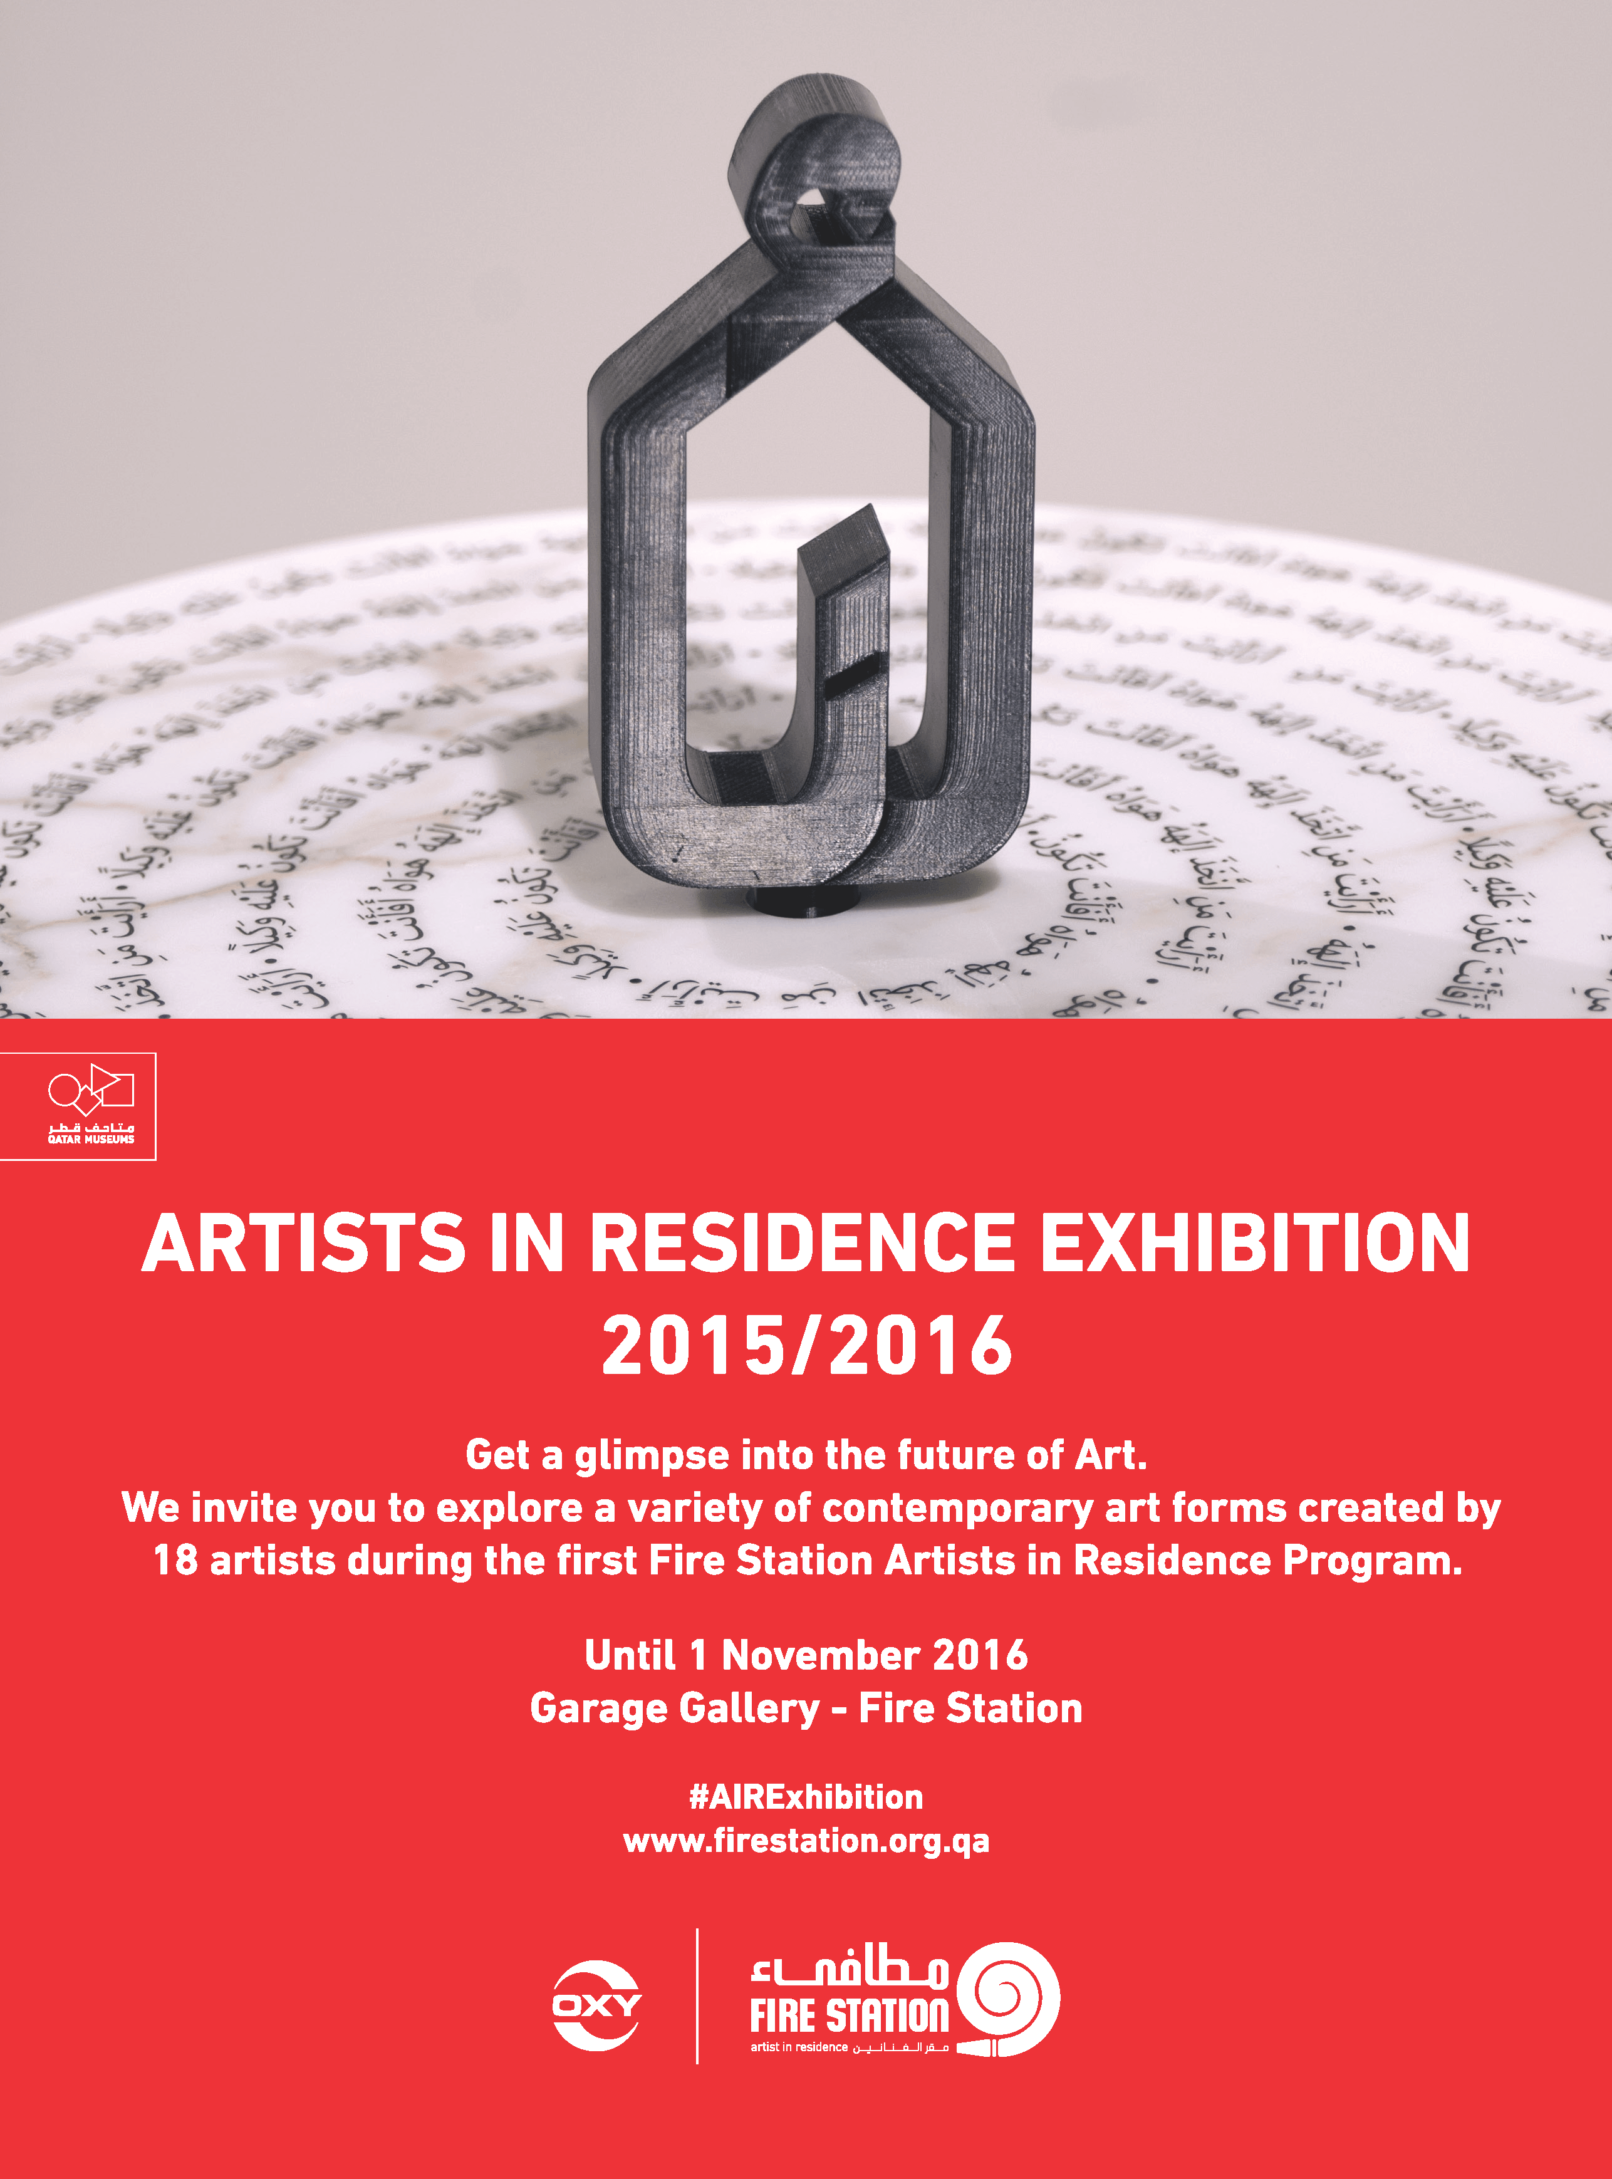 qm-artists-in-residence-1612×2179